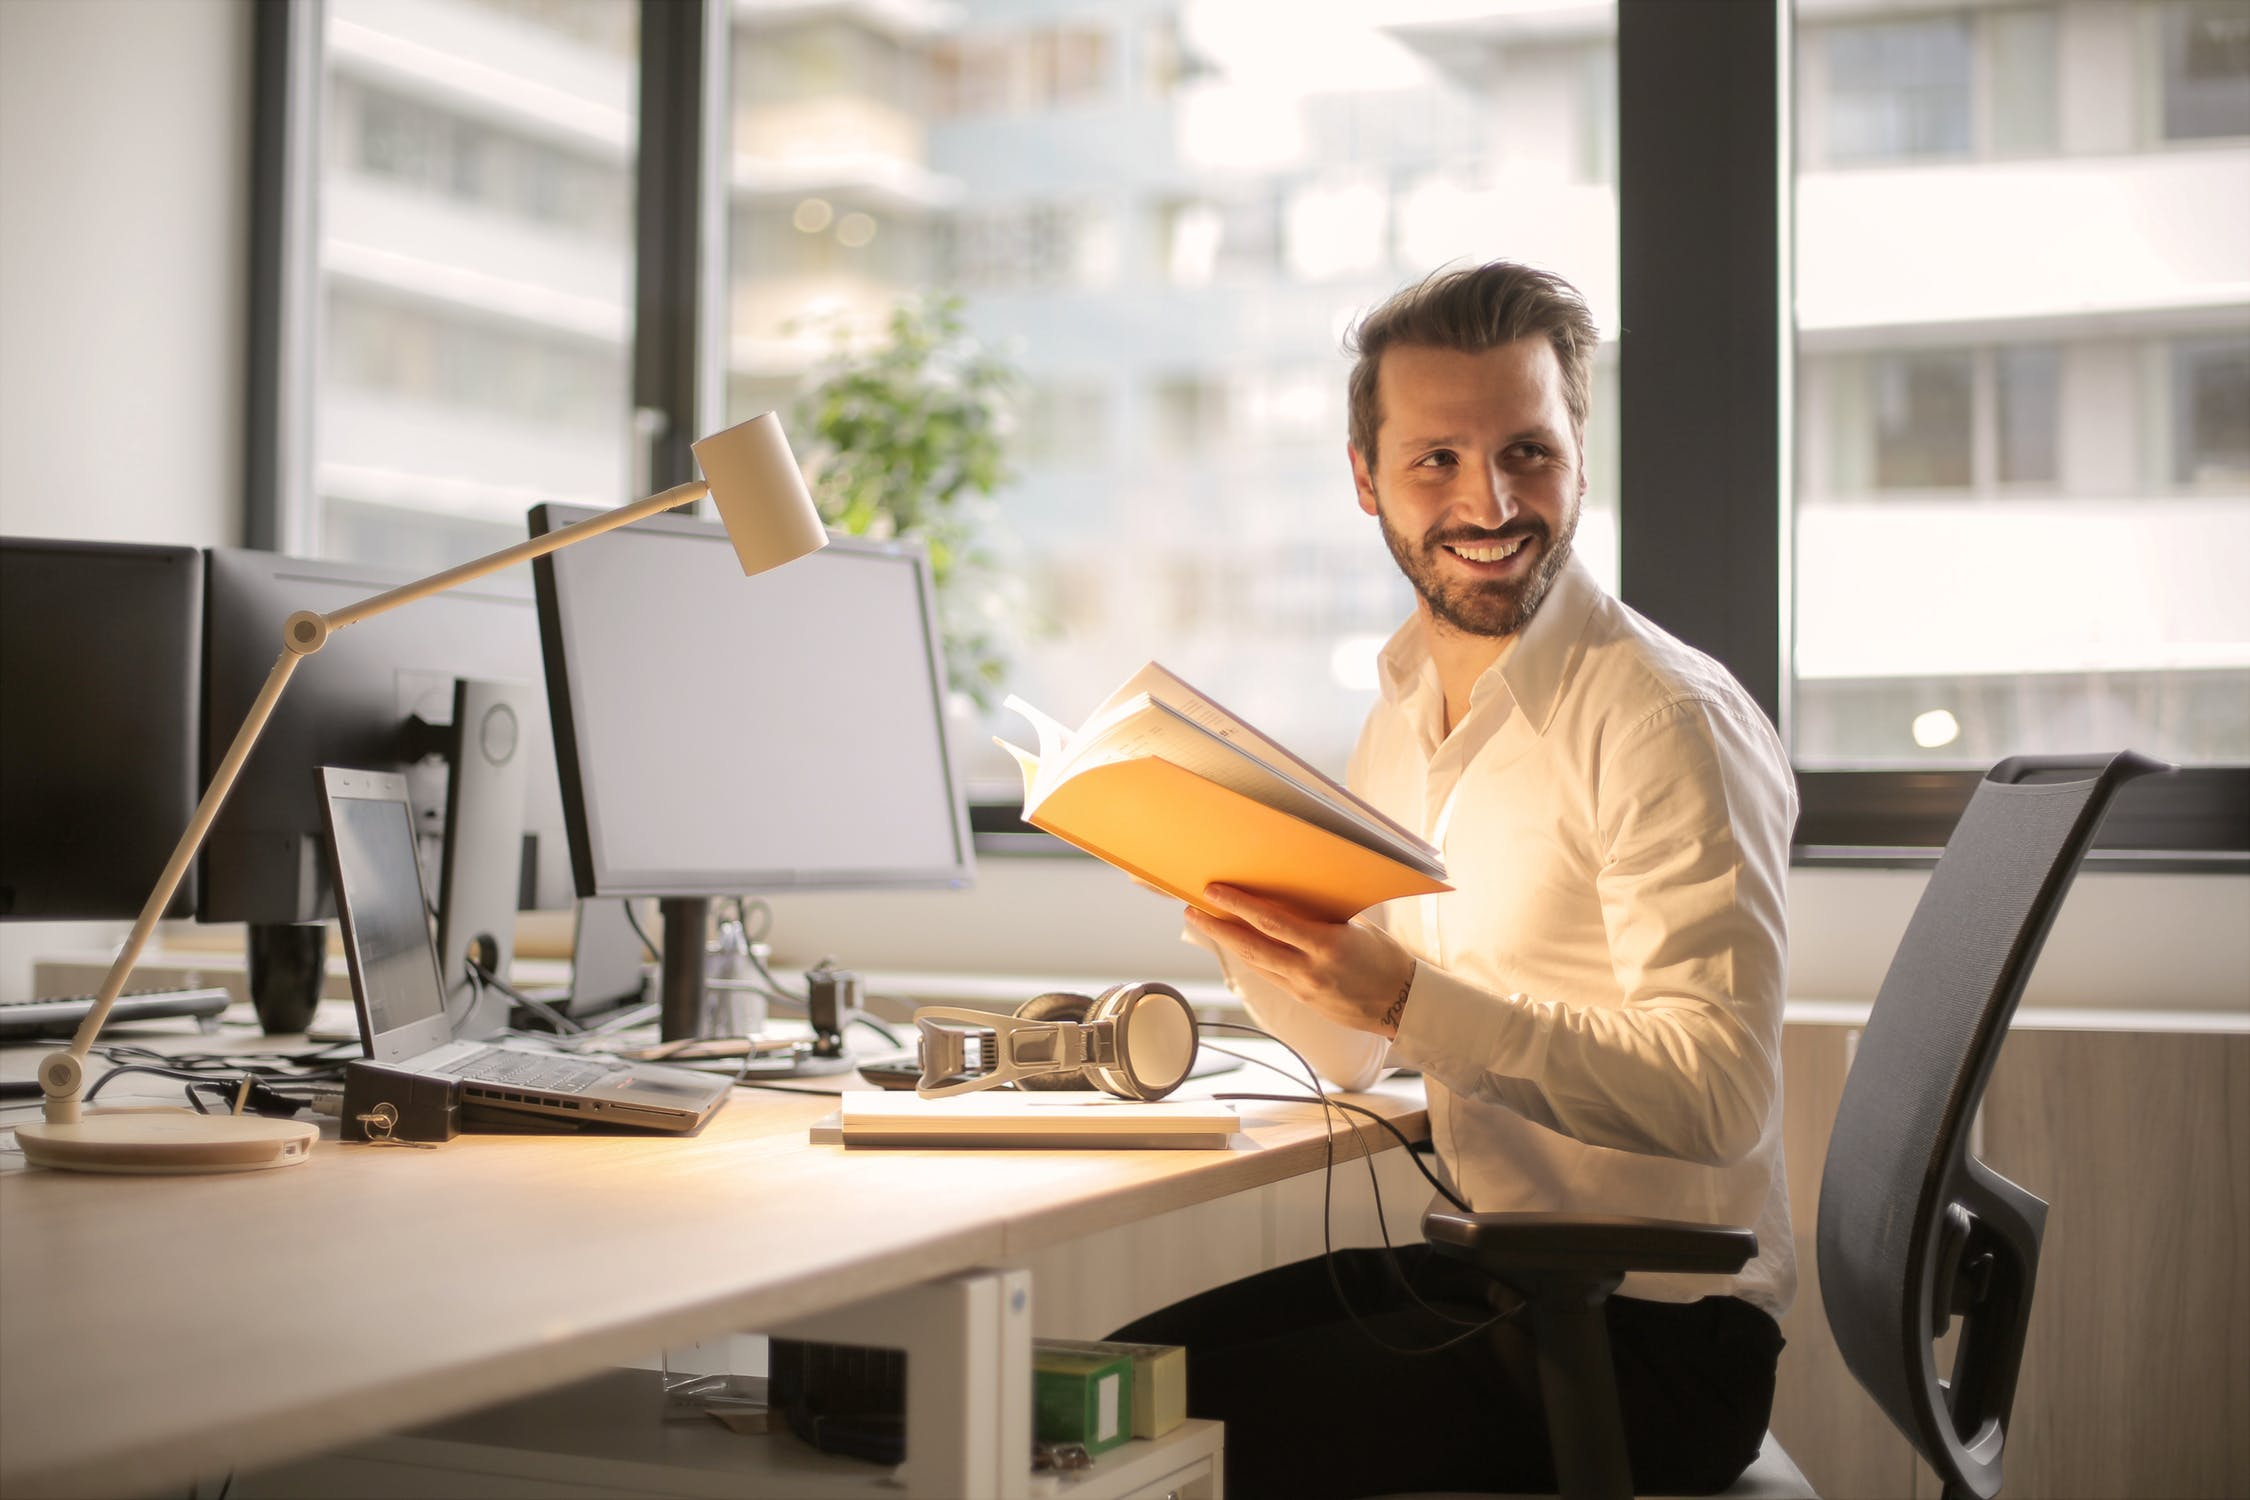 Is Using A Stand Up Desk Better For Your Back Than Using A Traditional Desk?